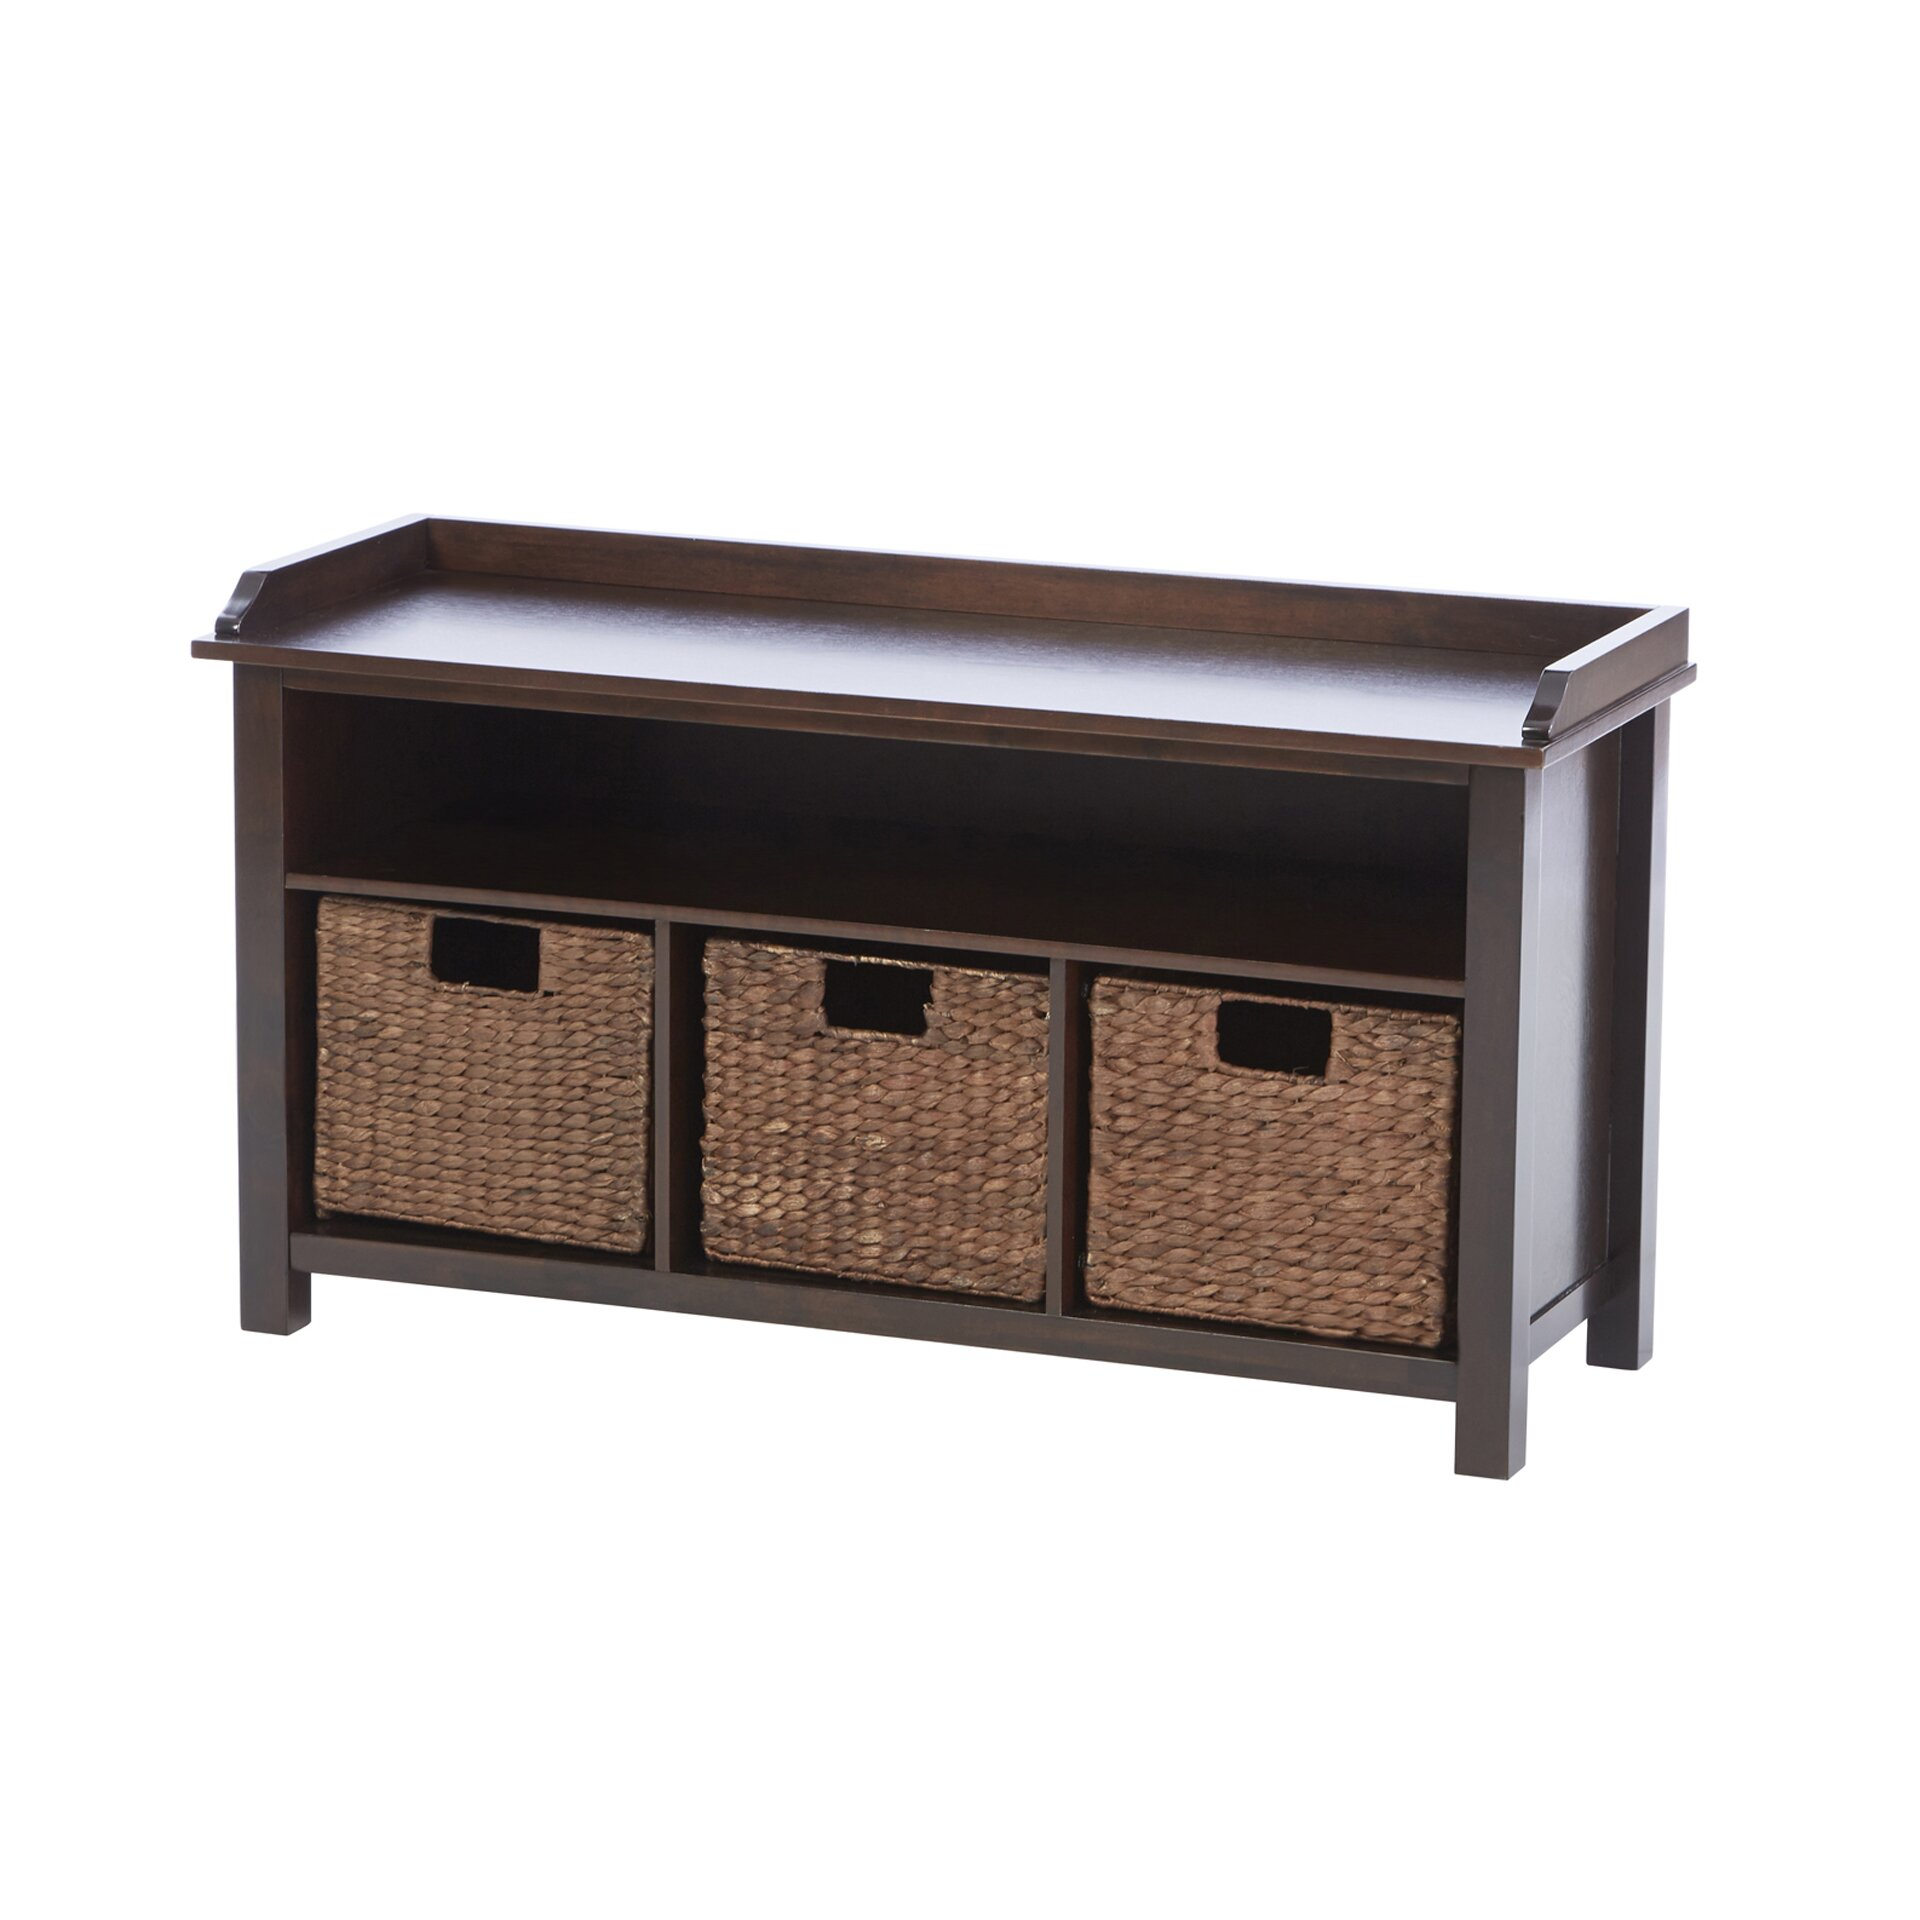 Andover mills tilbury storage bench reviews wayfair Storage benches